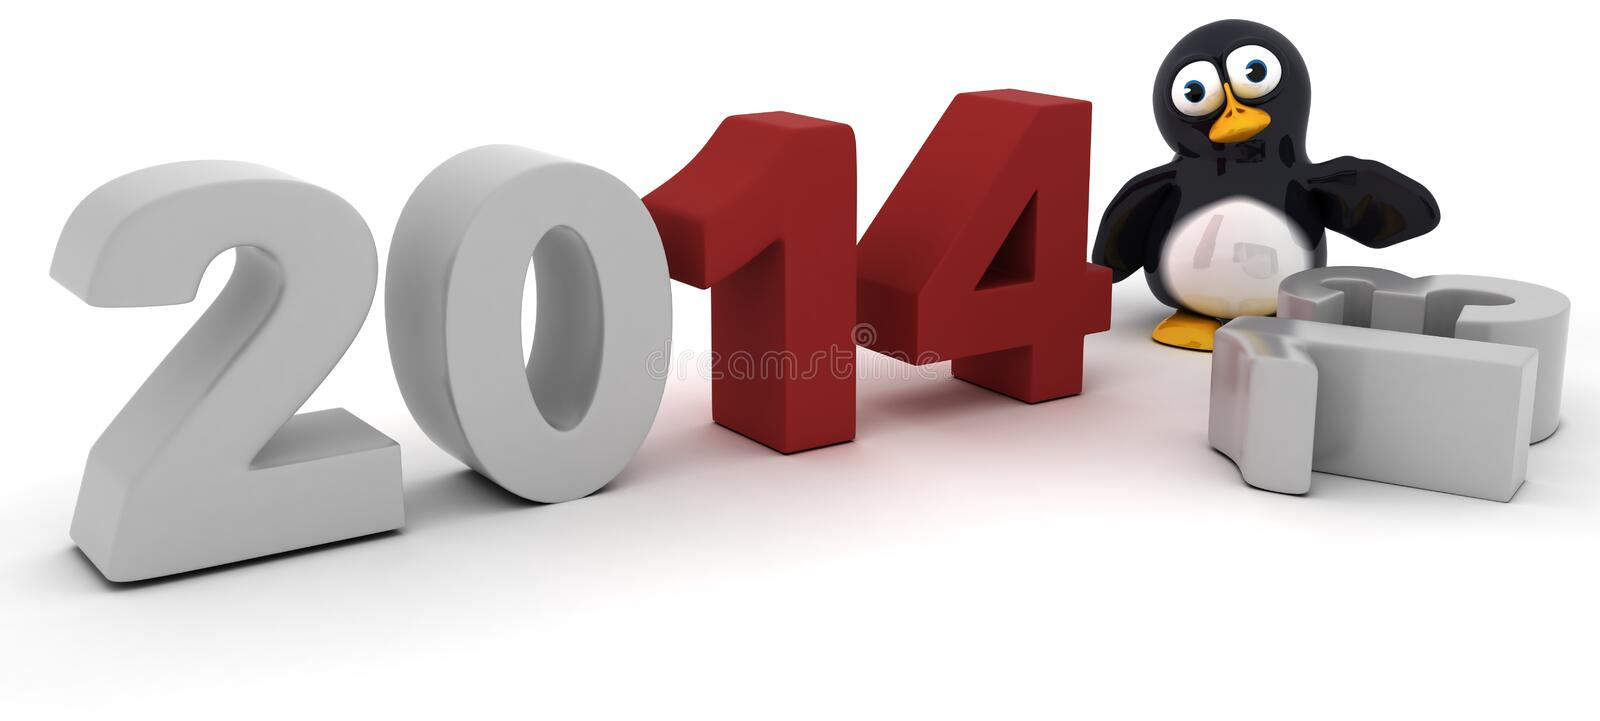 Penguin Character Bringing In The New Year Royalty Free Stock Images